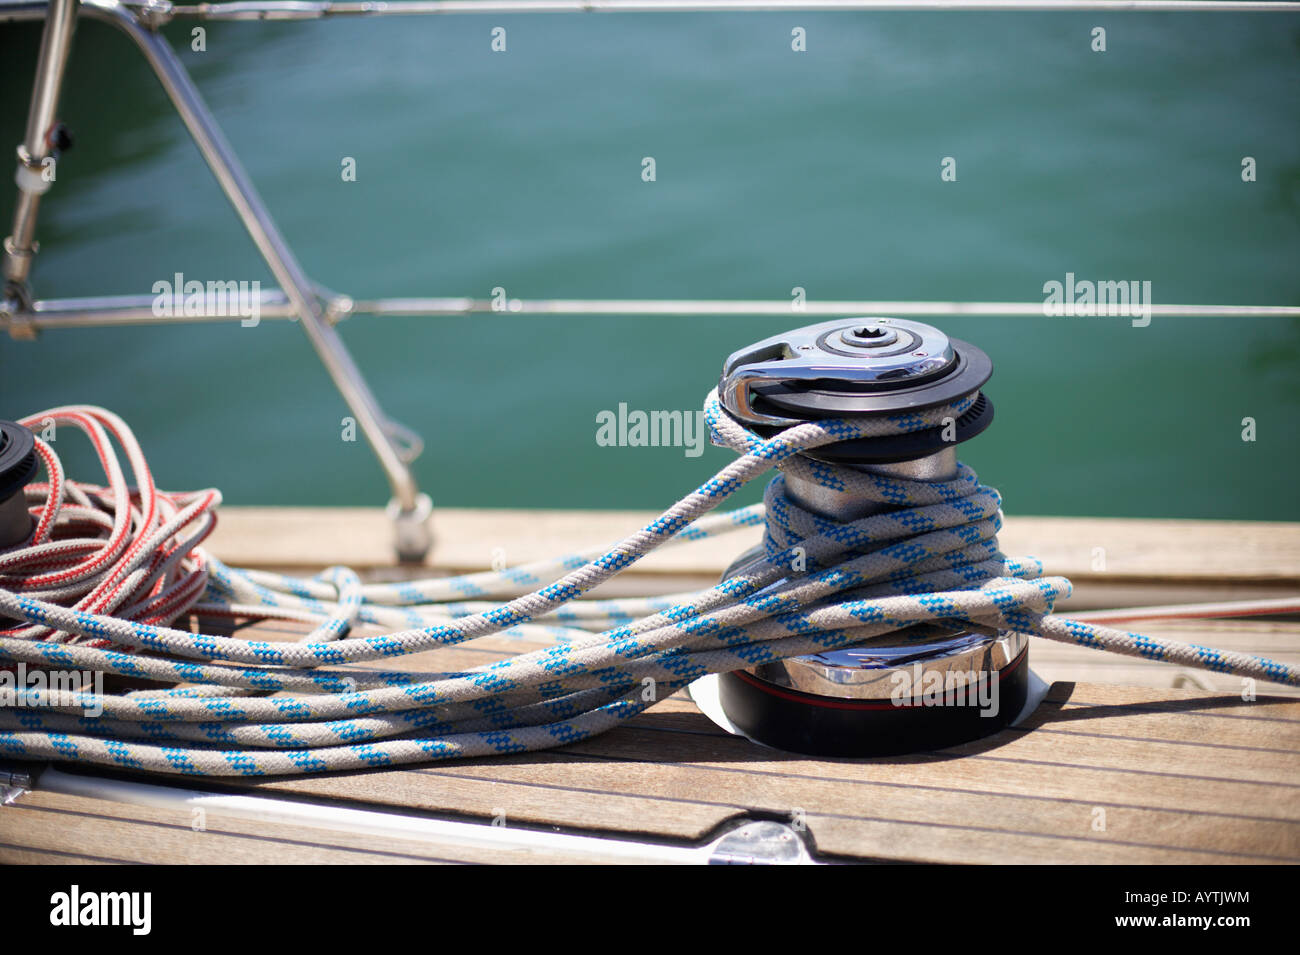 Winch on a boat - Stock Image